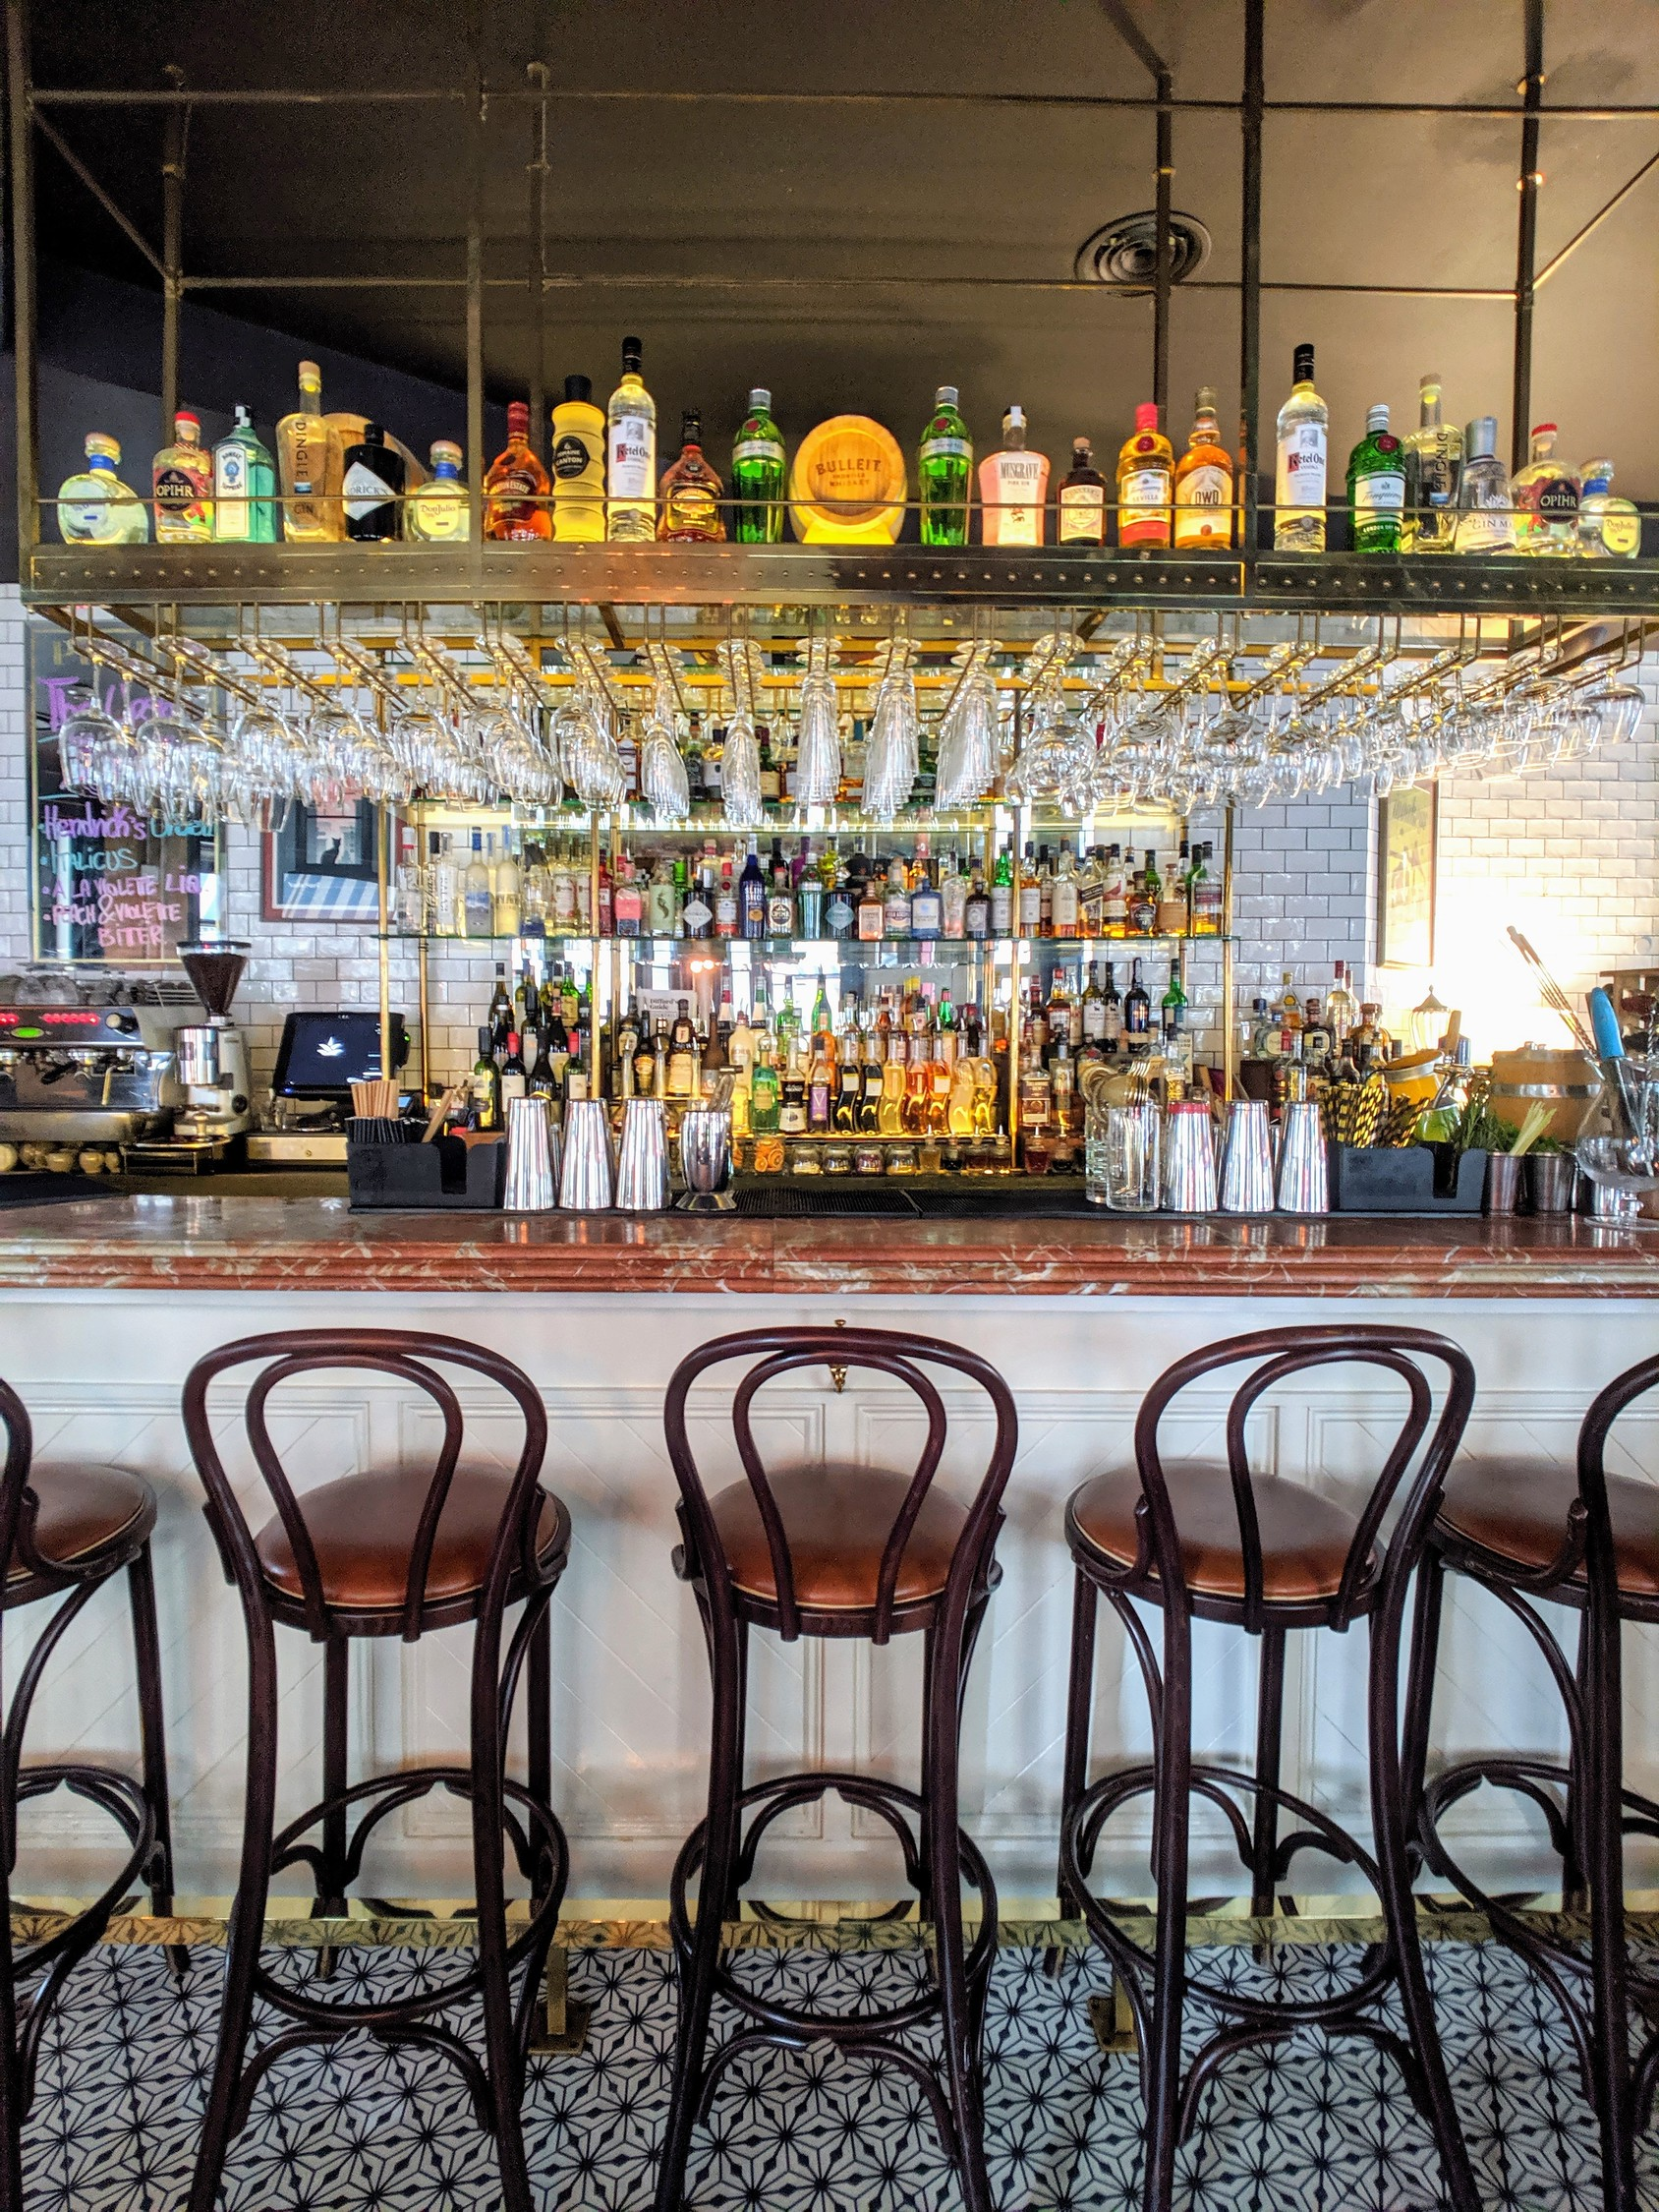 The front bar at Pichet considered one of the best restaurants in Dublin.